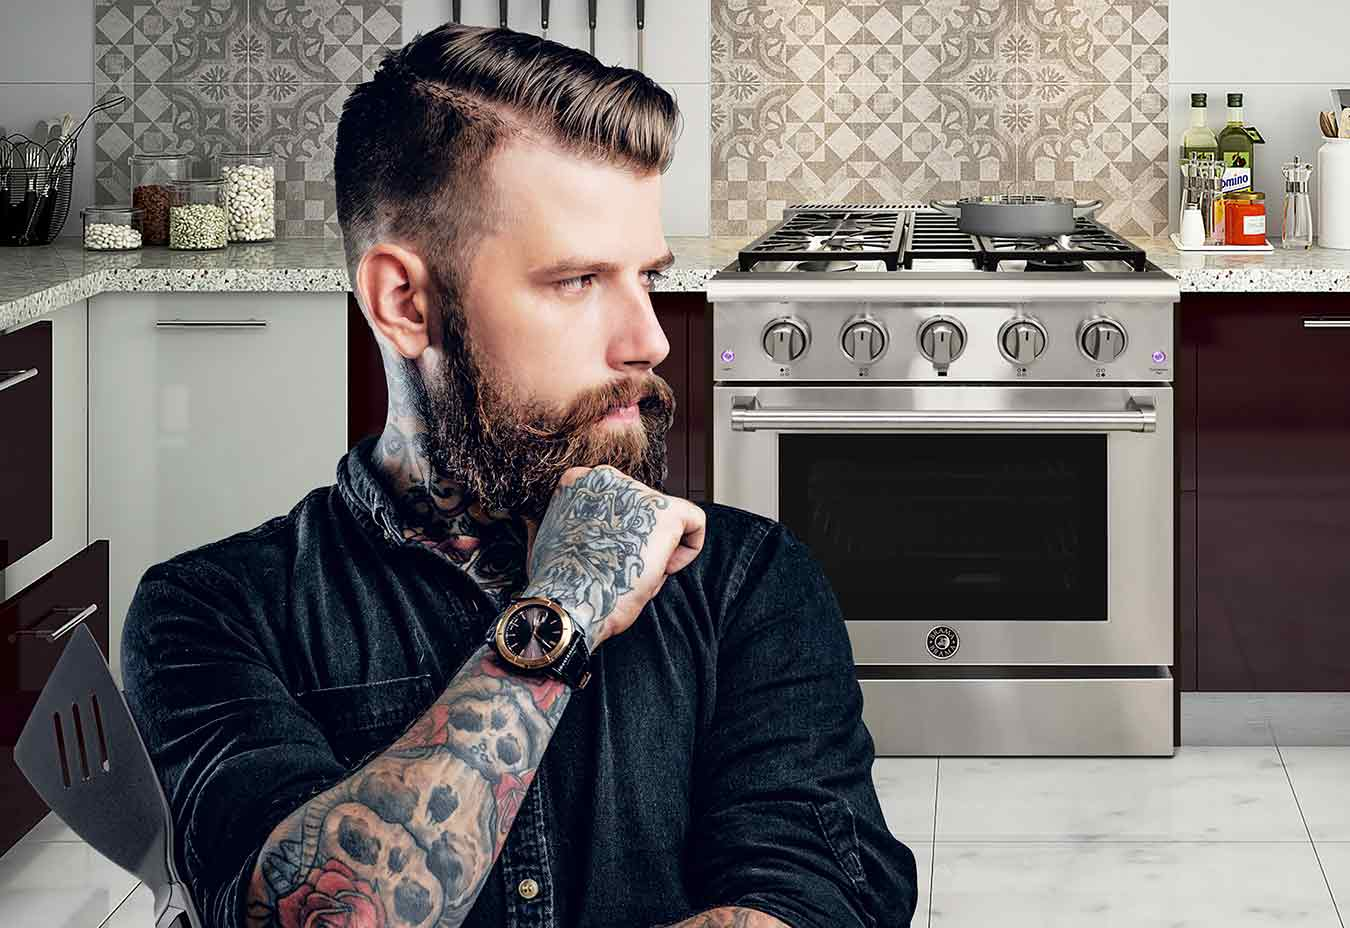 man in front of oven